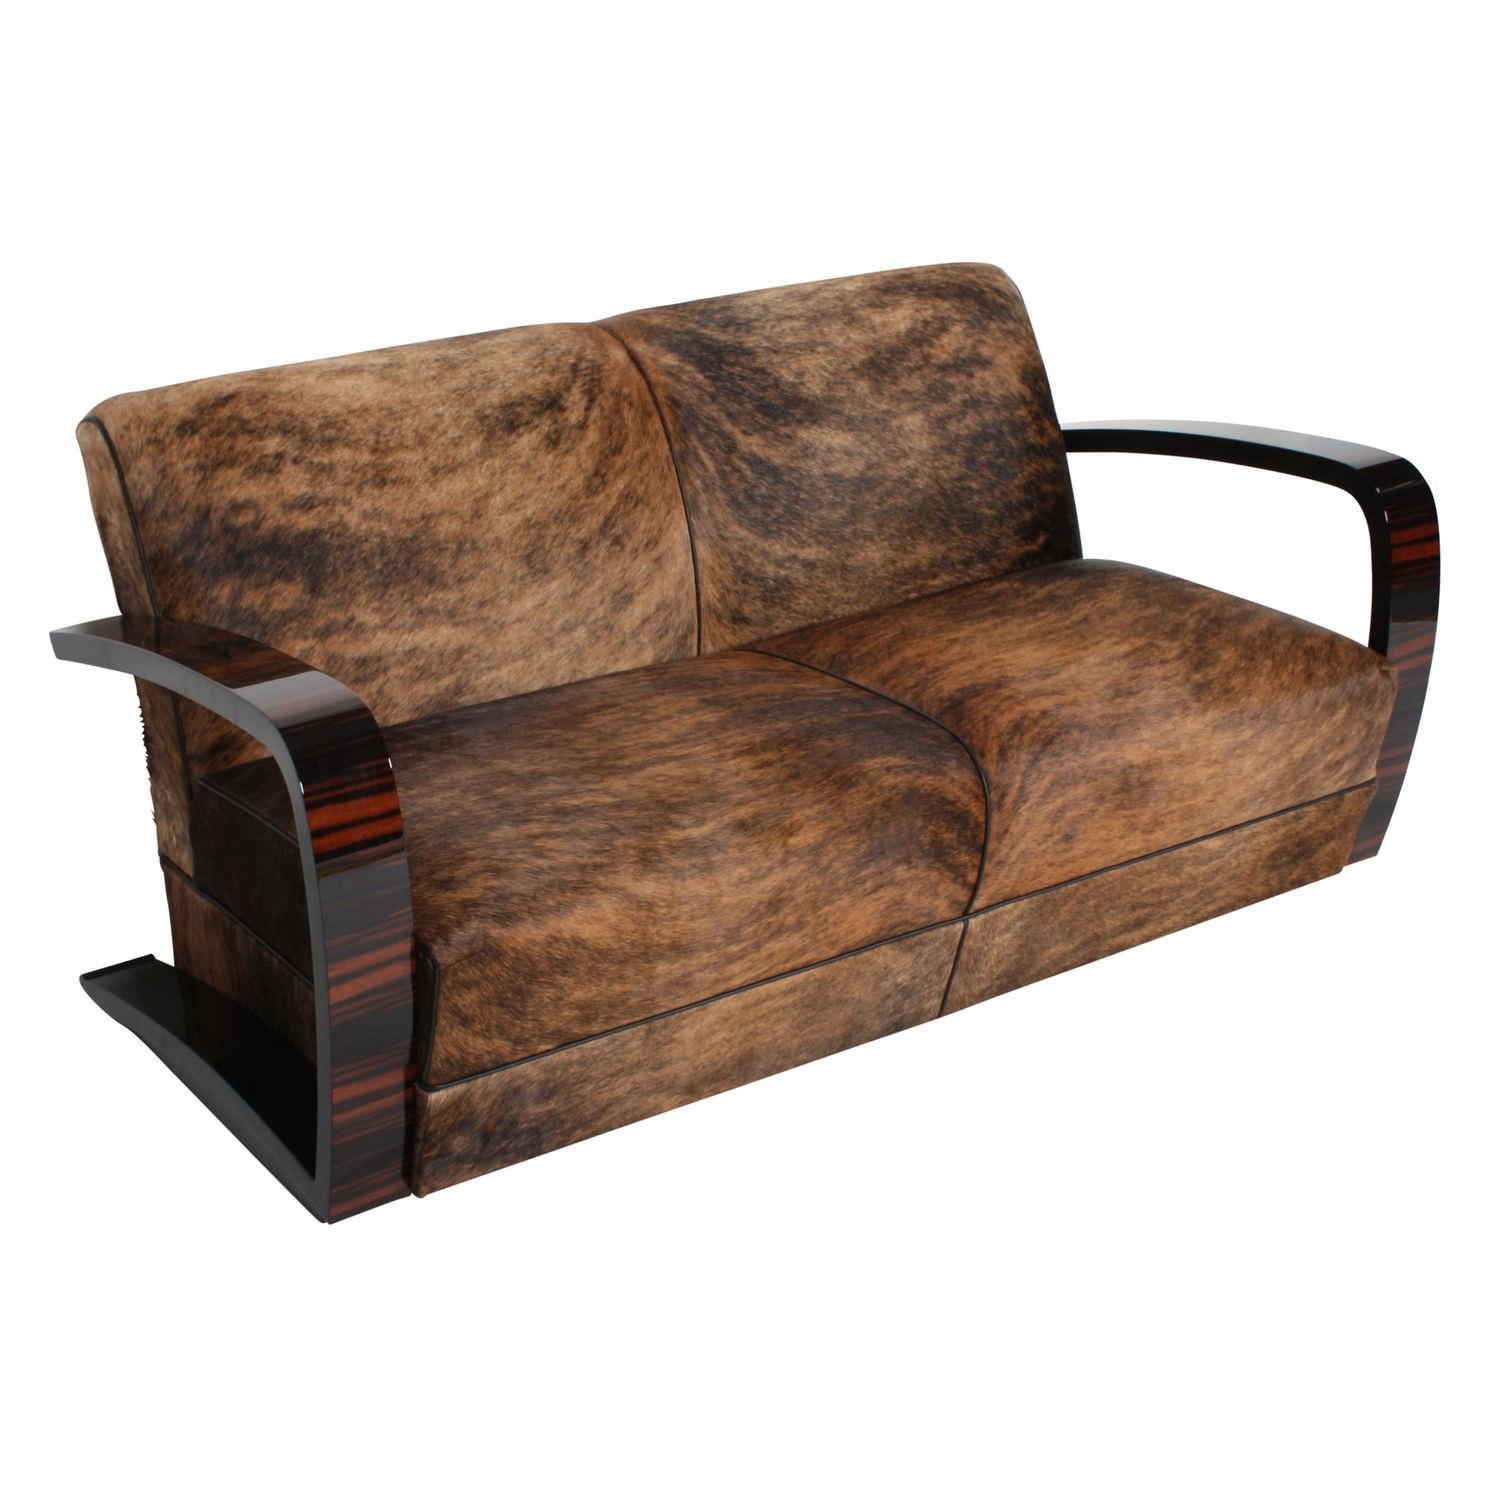 Sofas Center : Arteco Sofa Swedish Satin Birch Upholsteredrupal Intended For Art Deco Sofa And Chairs (Image 17 of 20)